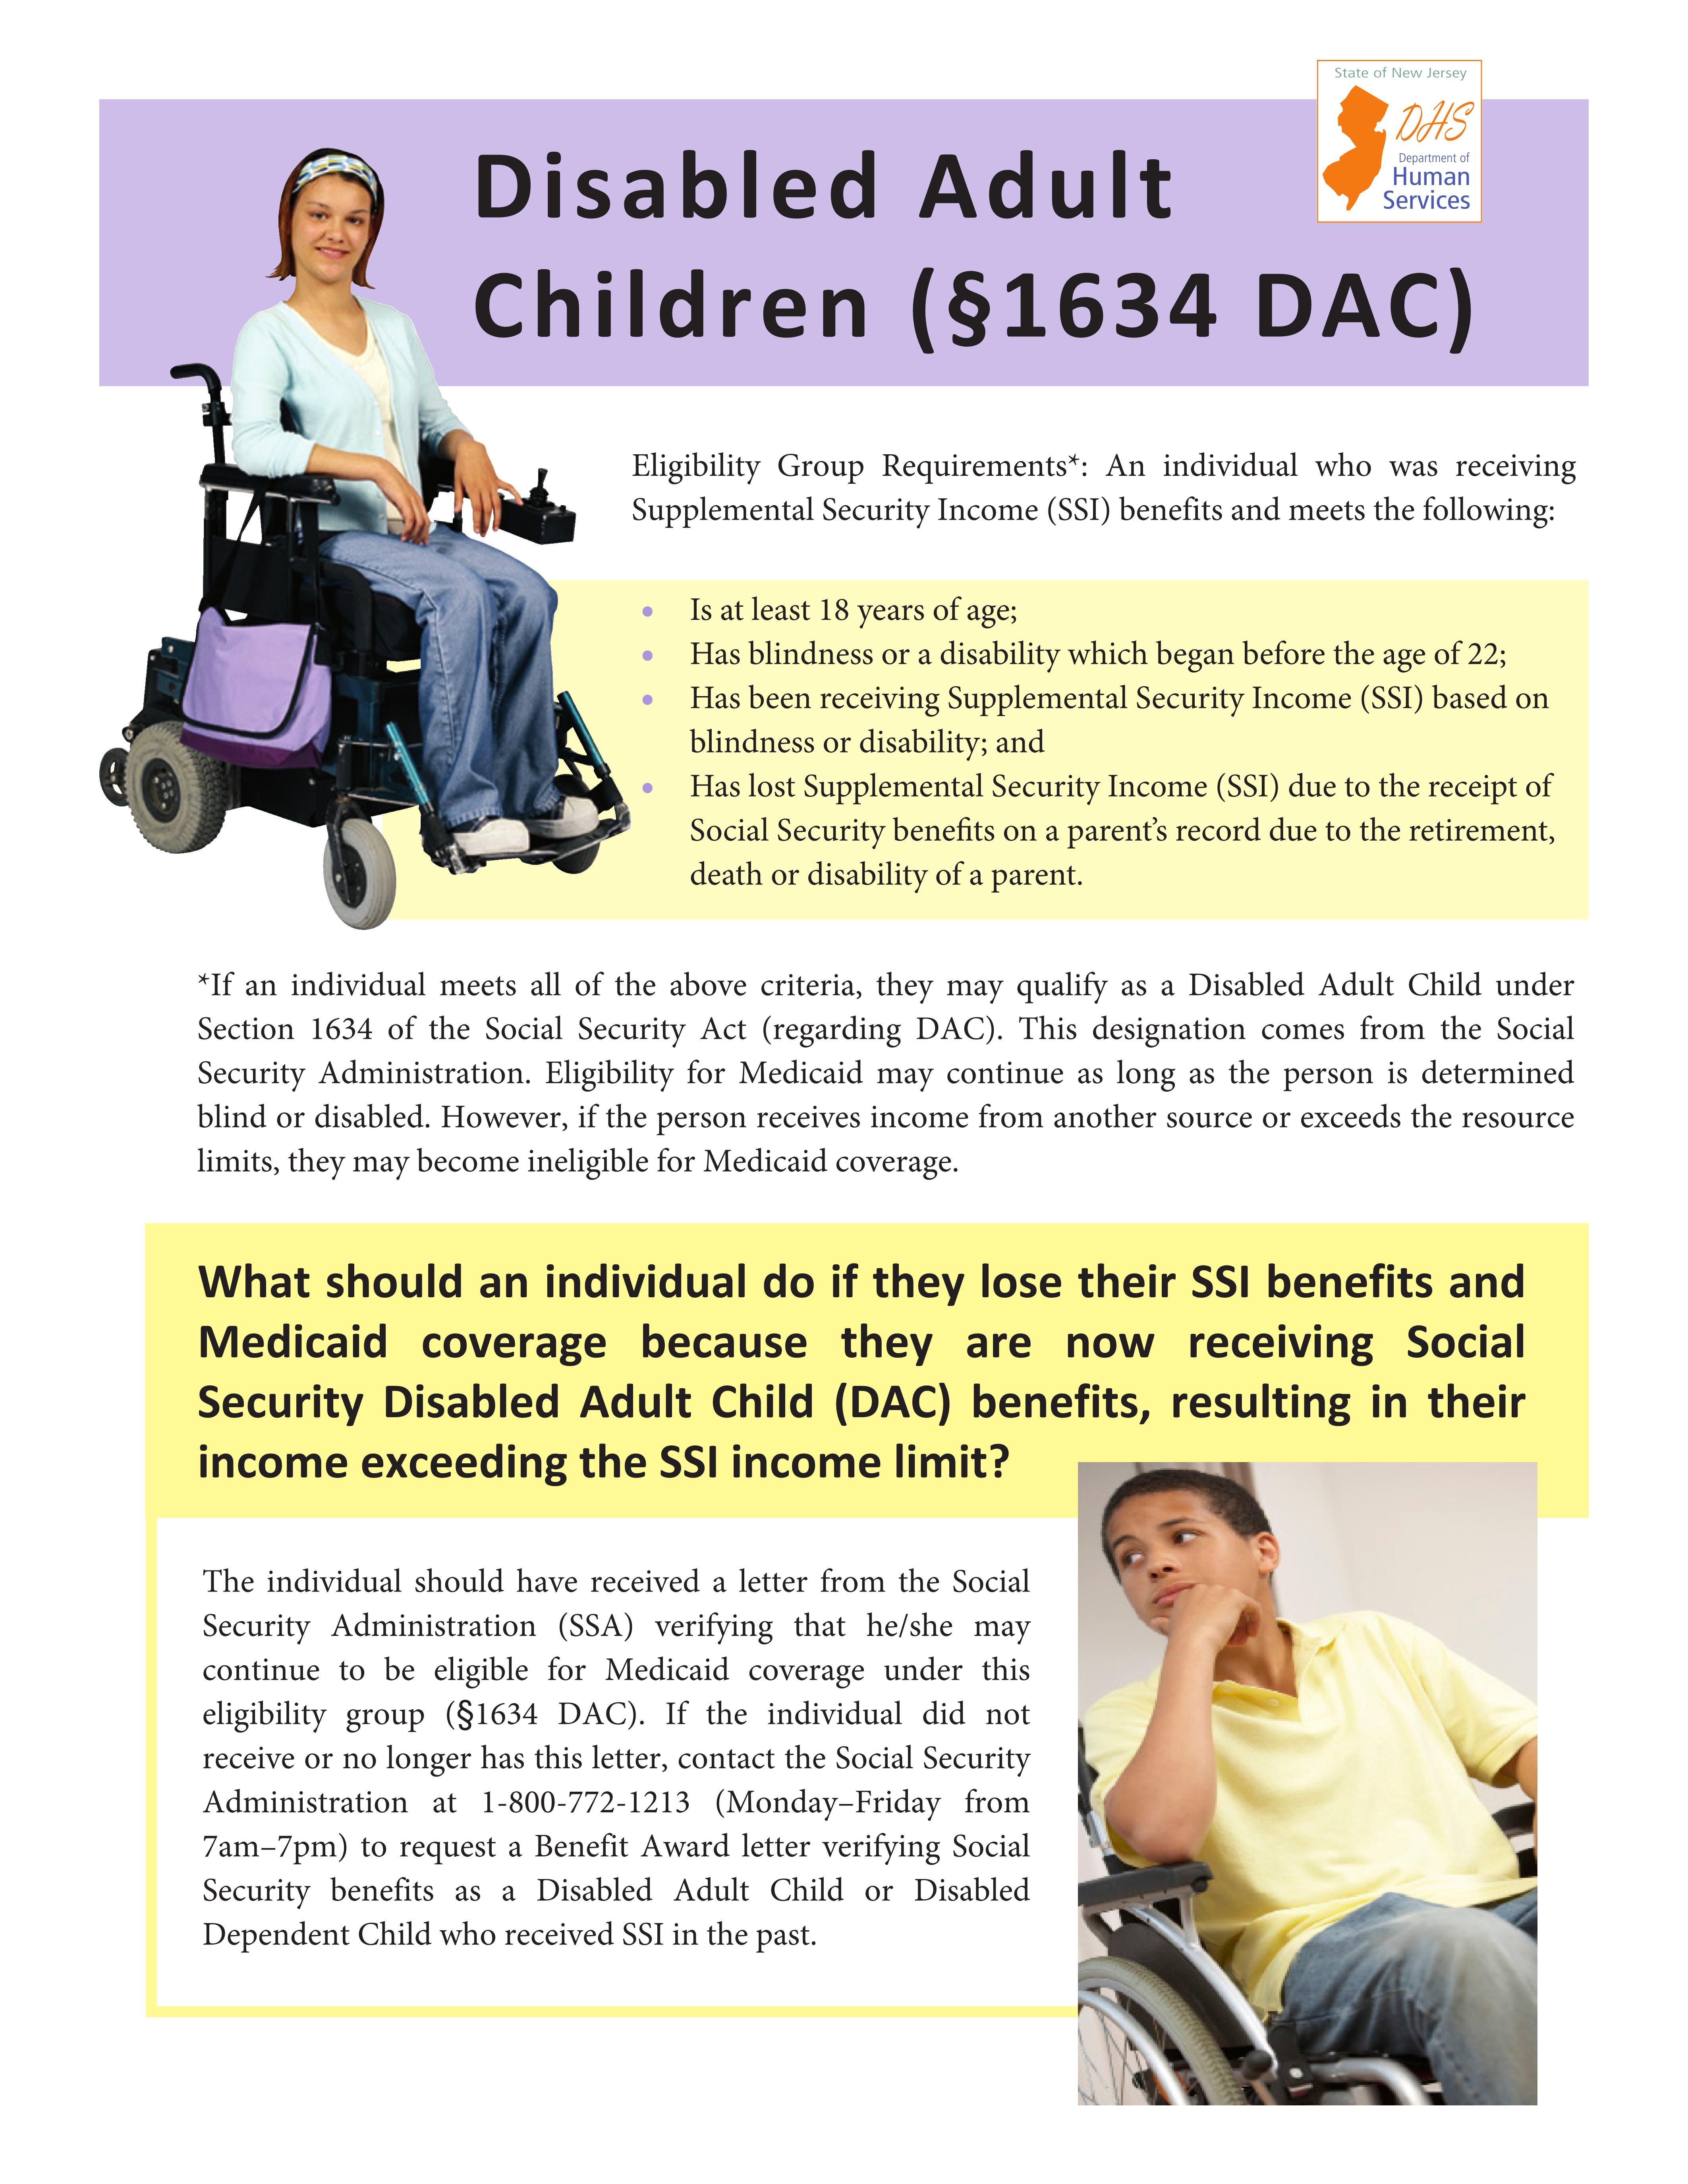 Section 1634 of the Social Security Act - Disabled Adult Child (DAC)